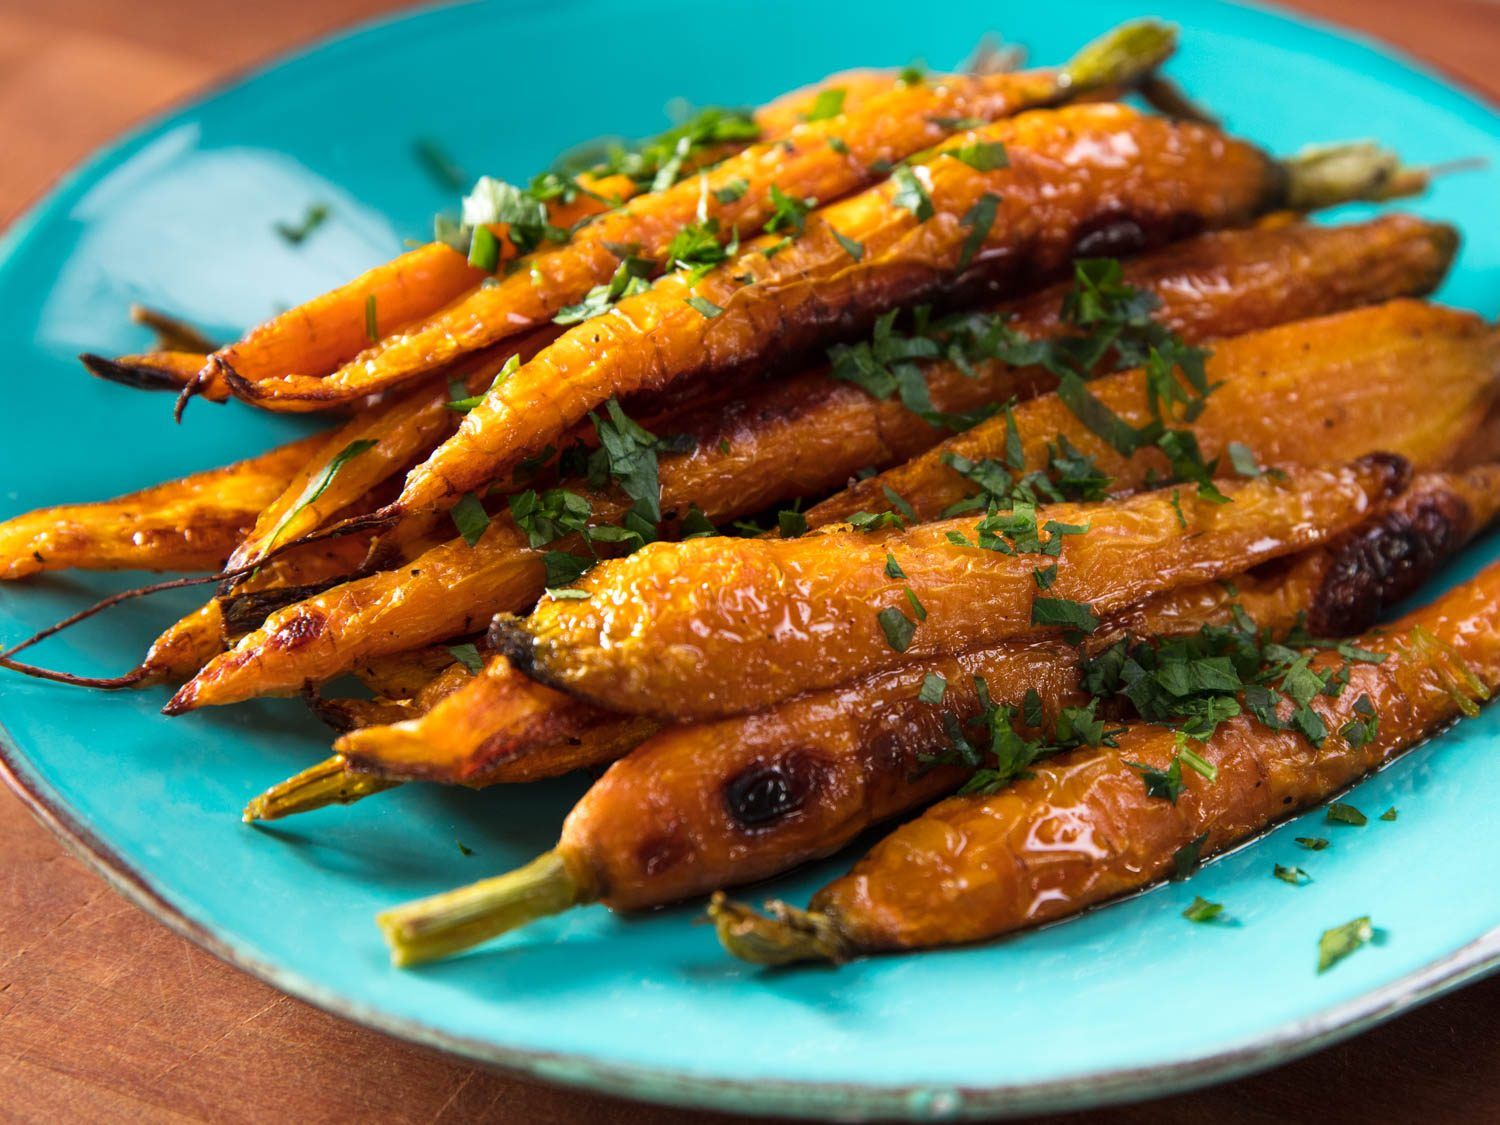 20170908-roasted-vegetables-vicky-wasik-carrots4-1500x1125.jpg